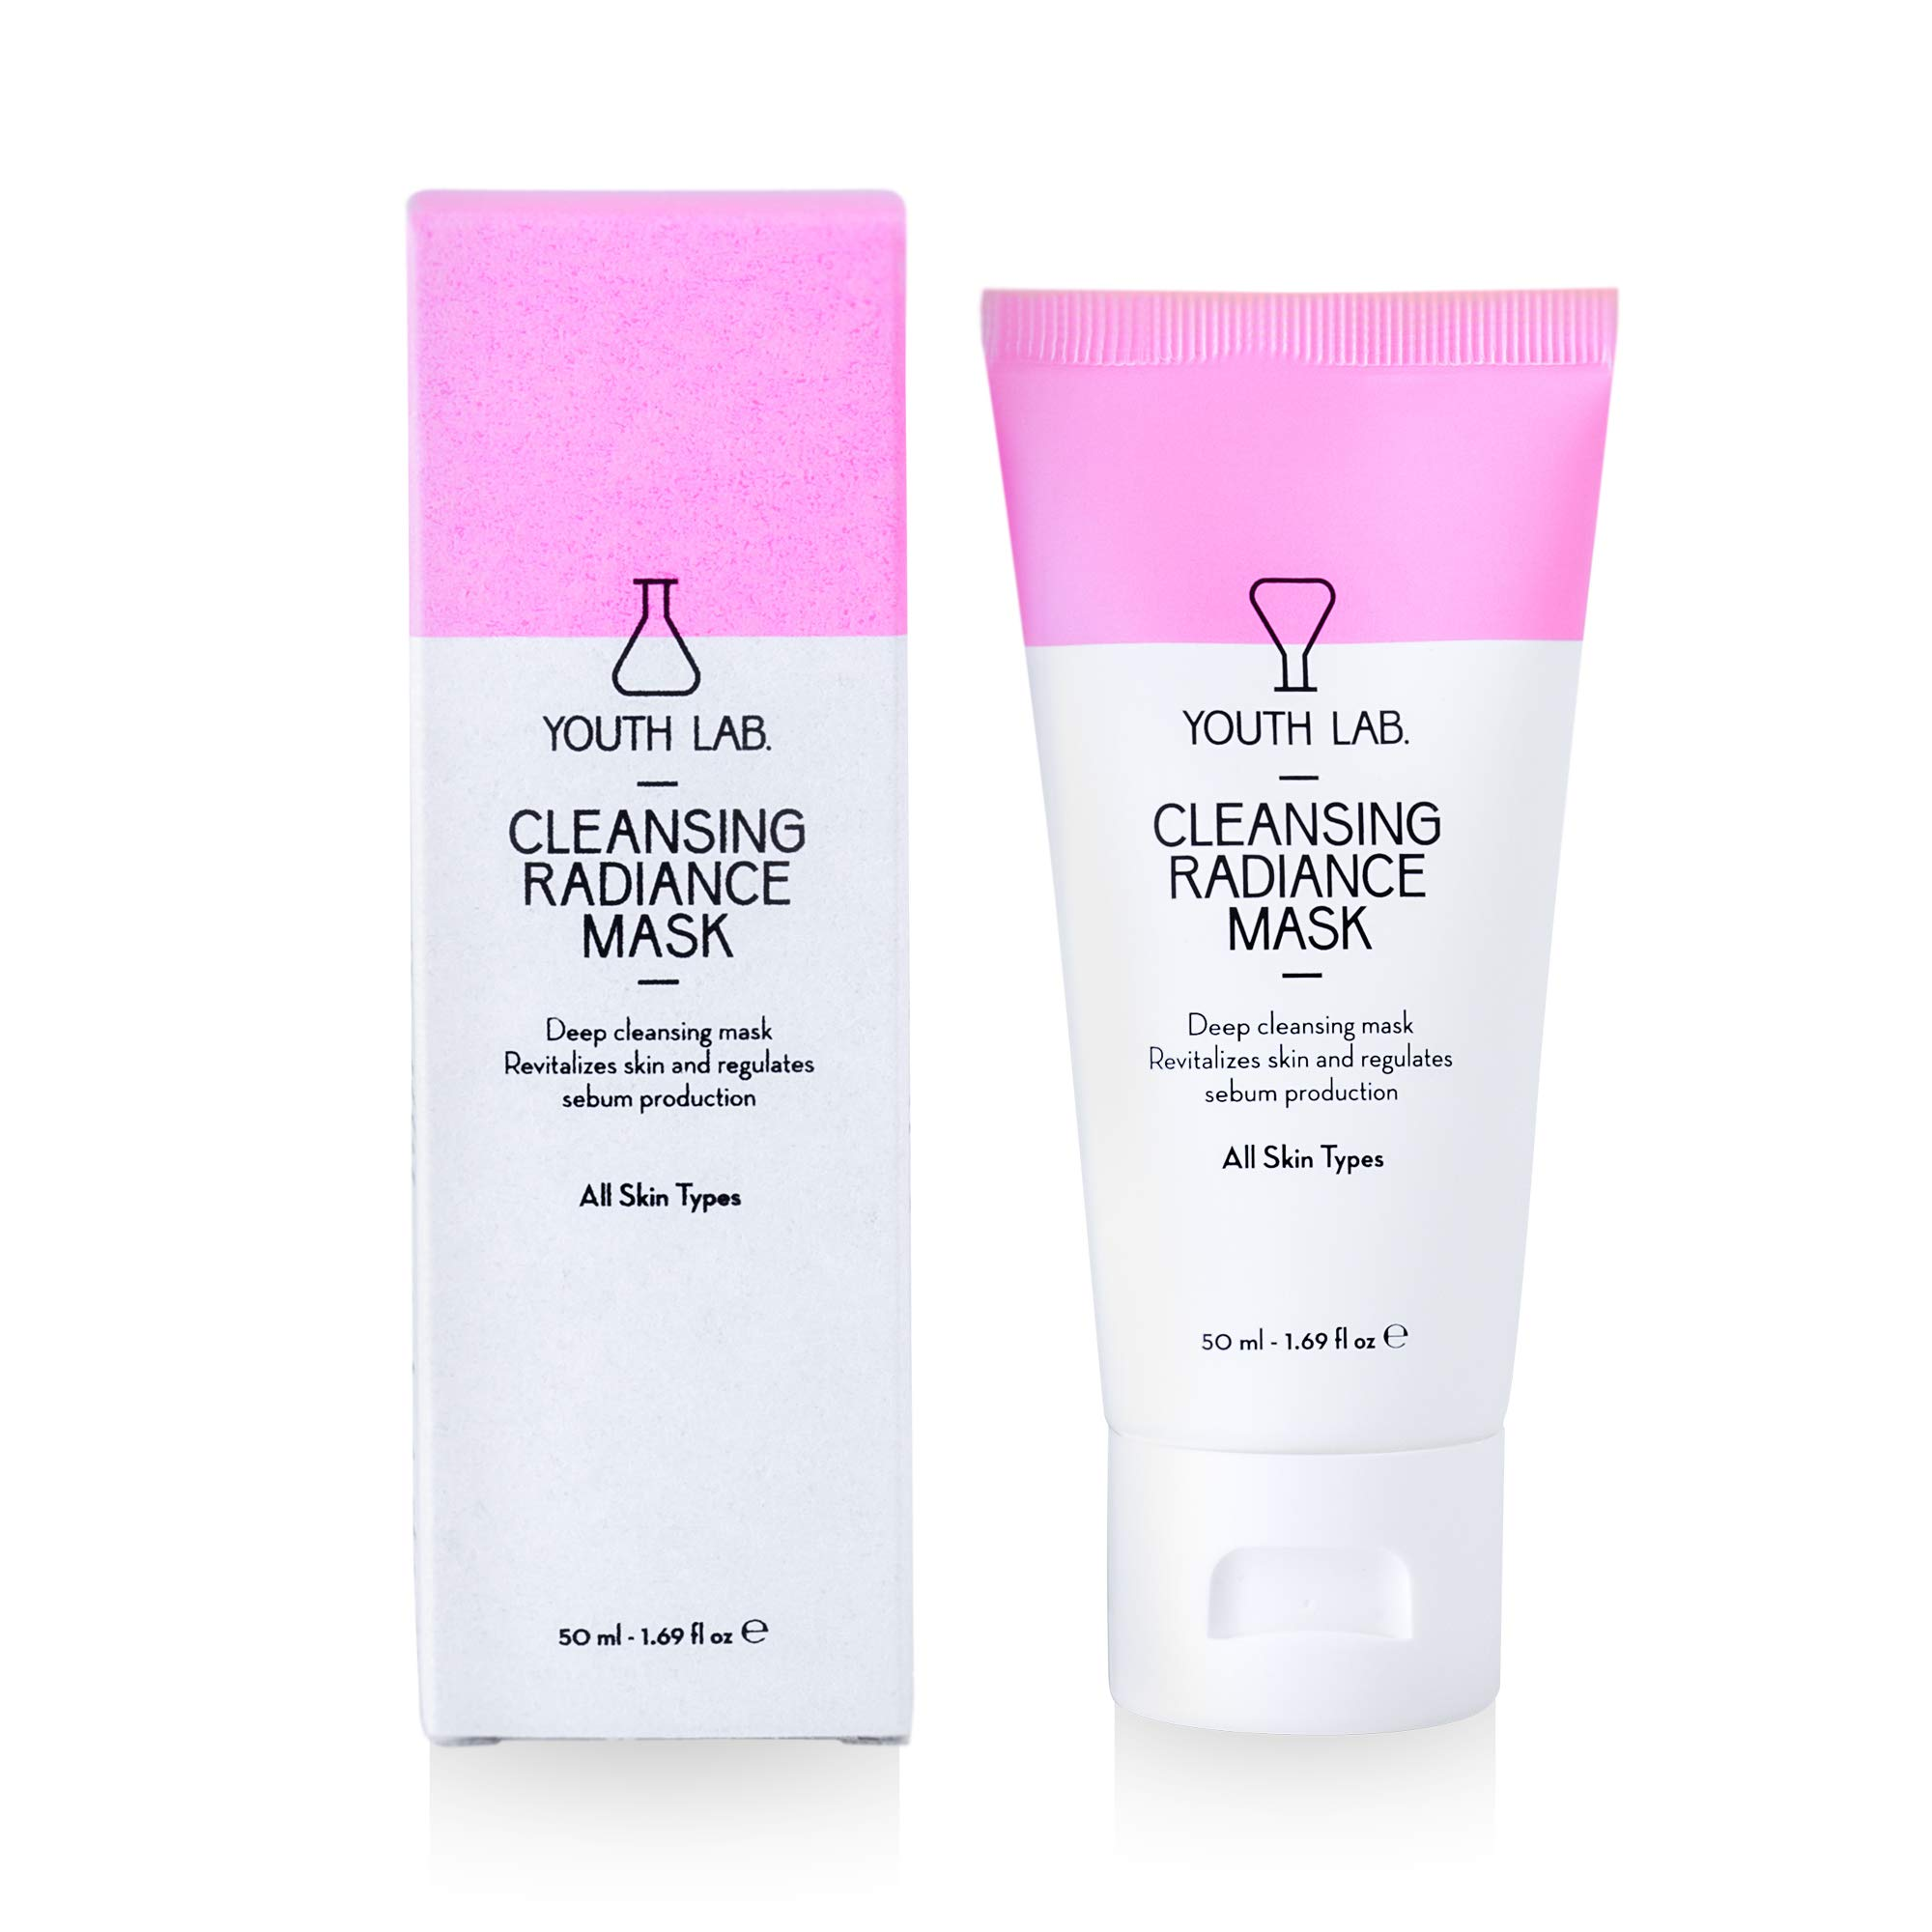 YOUTH LAB Cleansing Radiance Mask - Deep Hydrating Face Beauty Care for All Skin Types - Facial Blackhead Remover and Pore Minimizer - Moisturizing and Exfoliating Cleaner - Prevents Acne Bursts